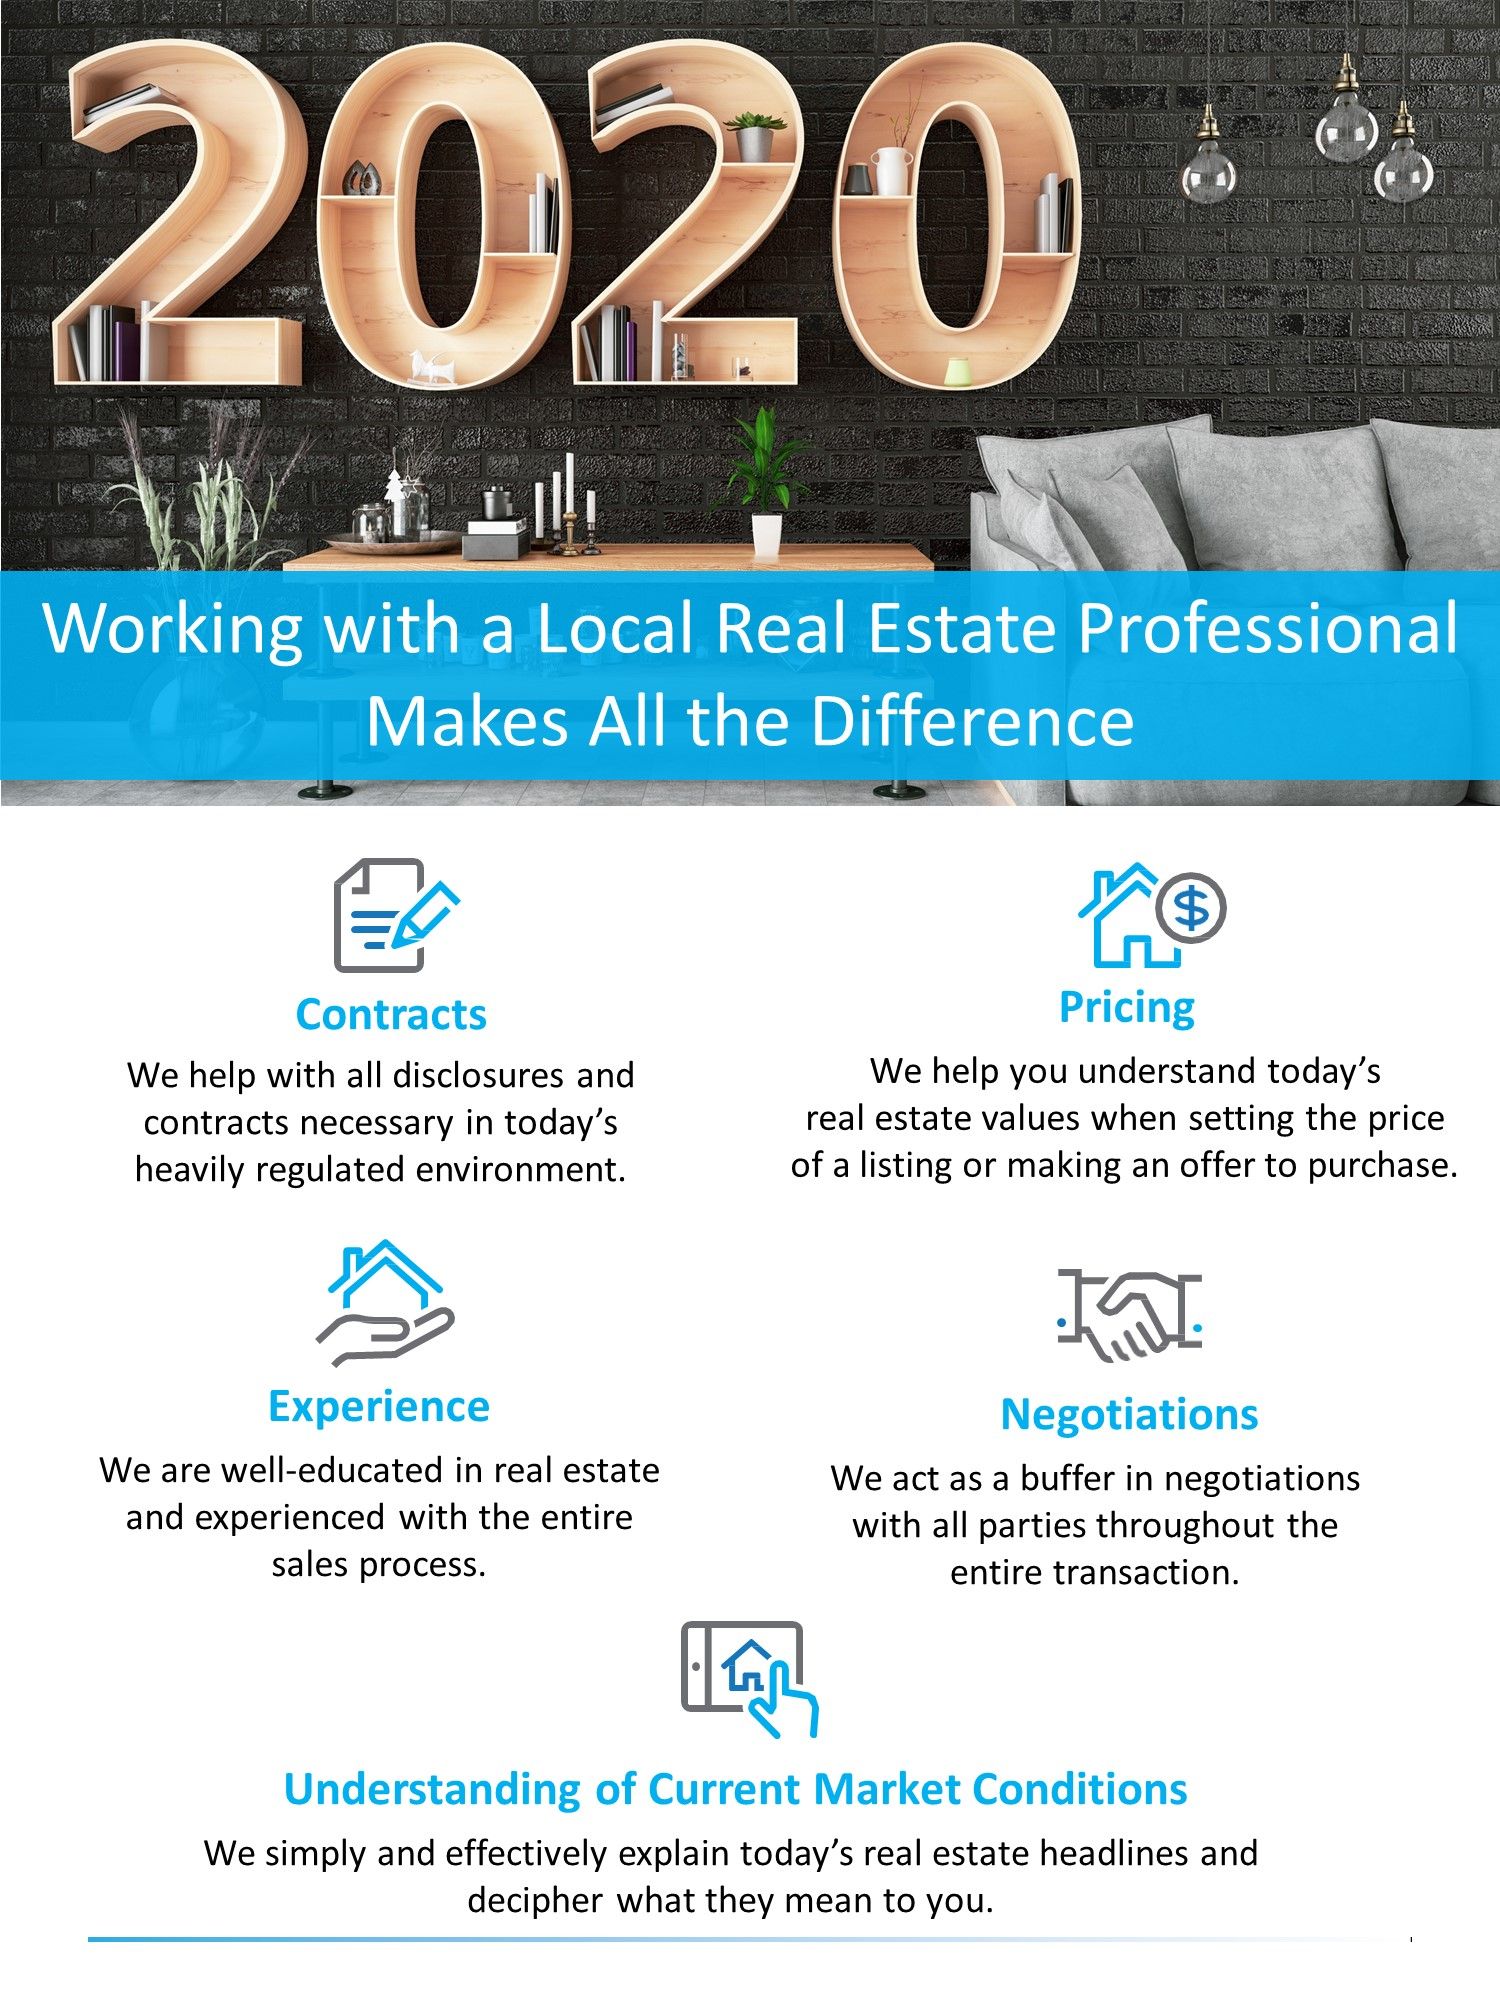 Working with a Local Real Estate Professional Makes All the Difference [INFOGRAPHIC] | Bridge Builders